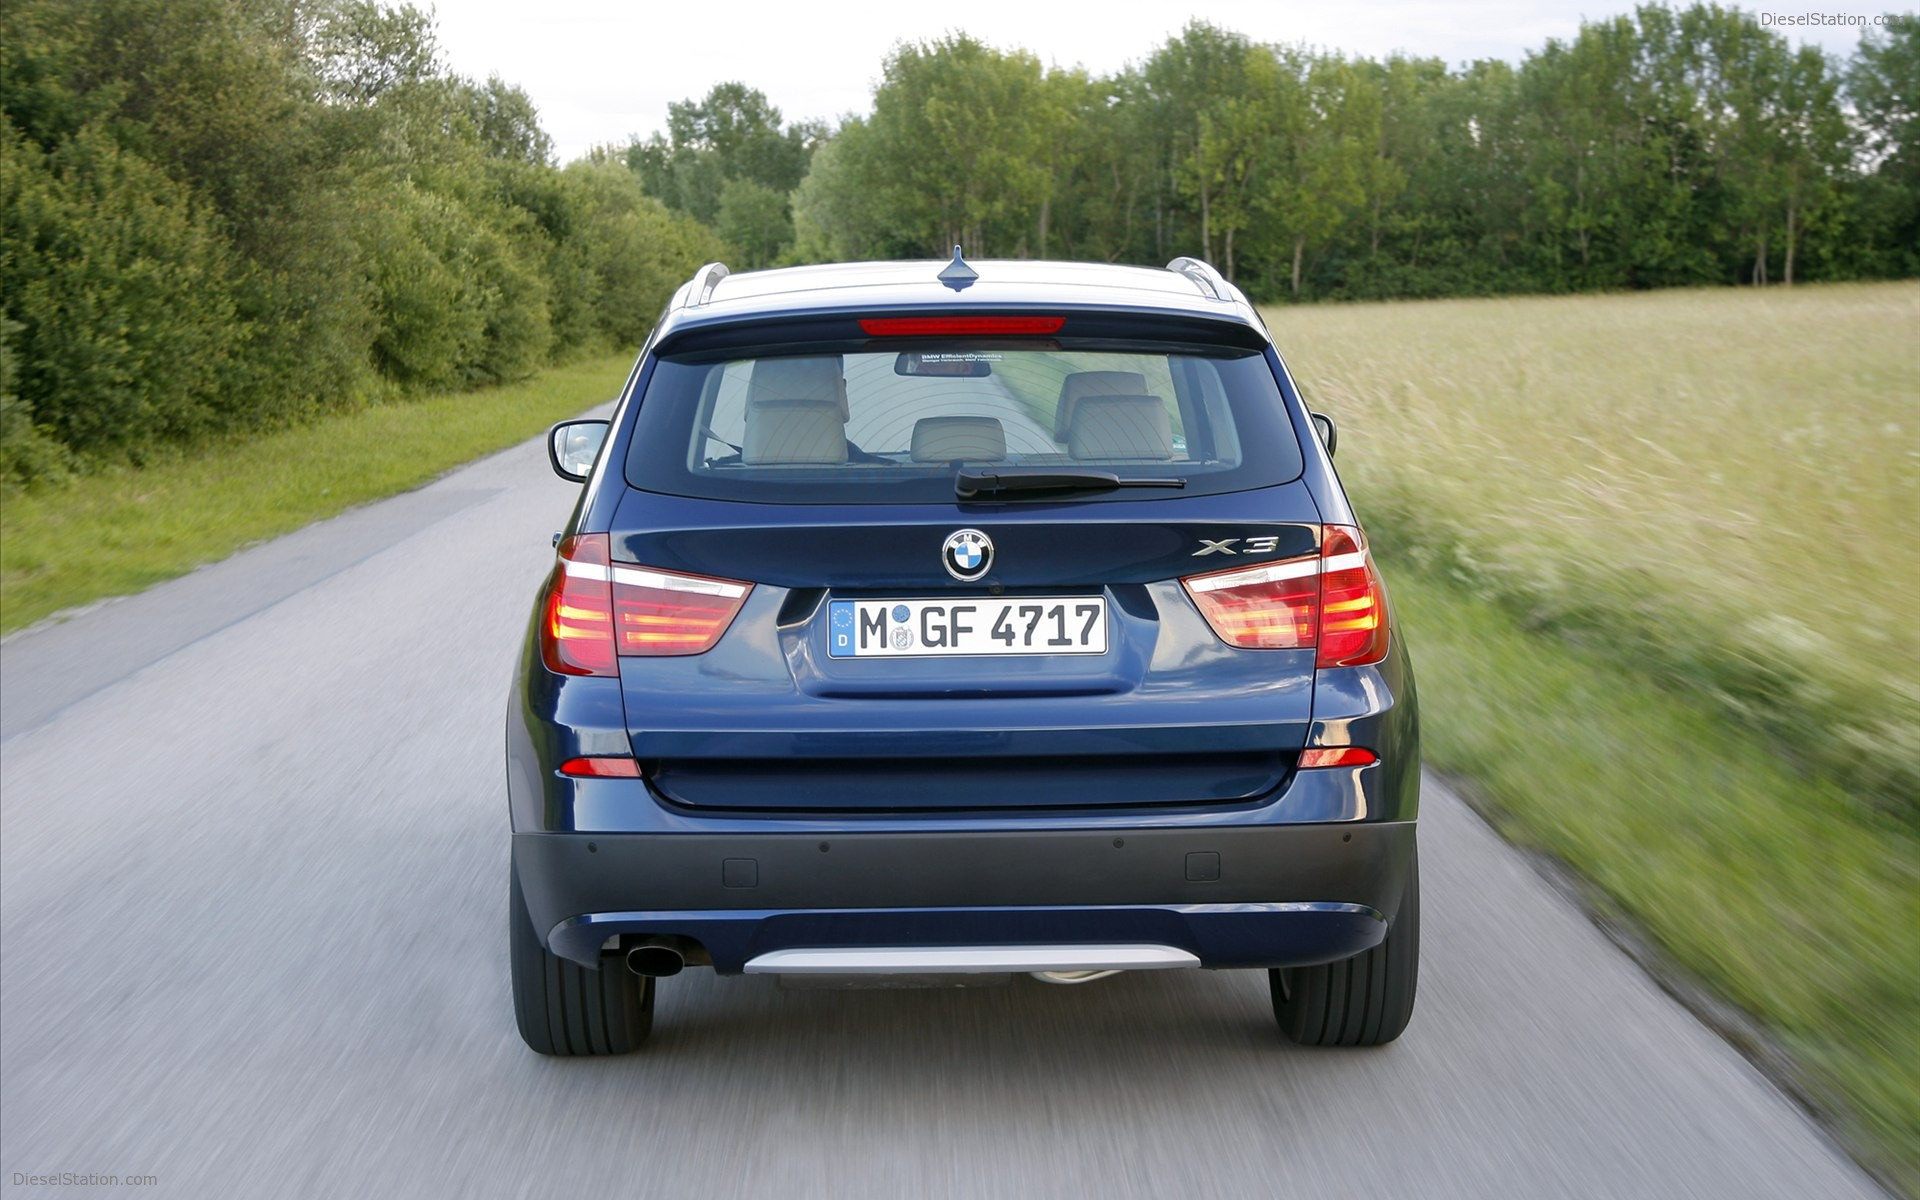 BMW X3 sDrive20i 2012 photo - 4